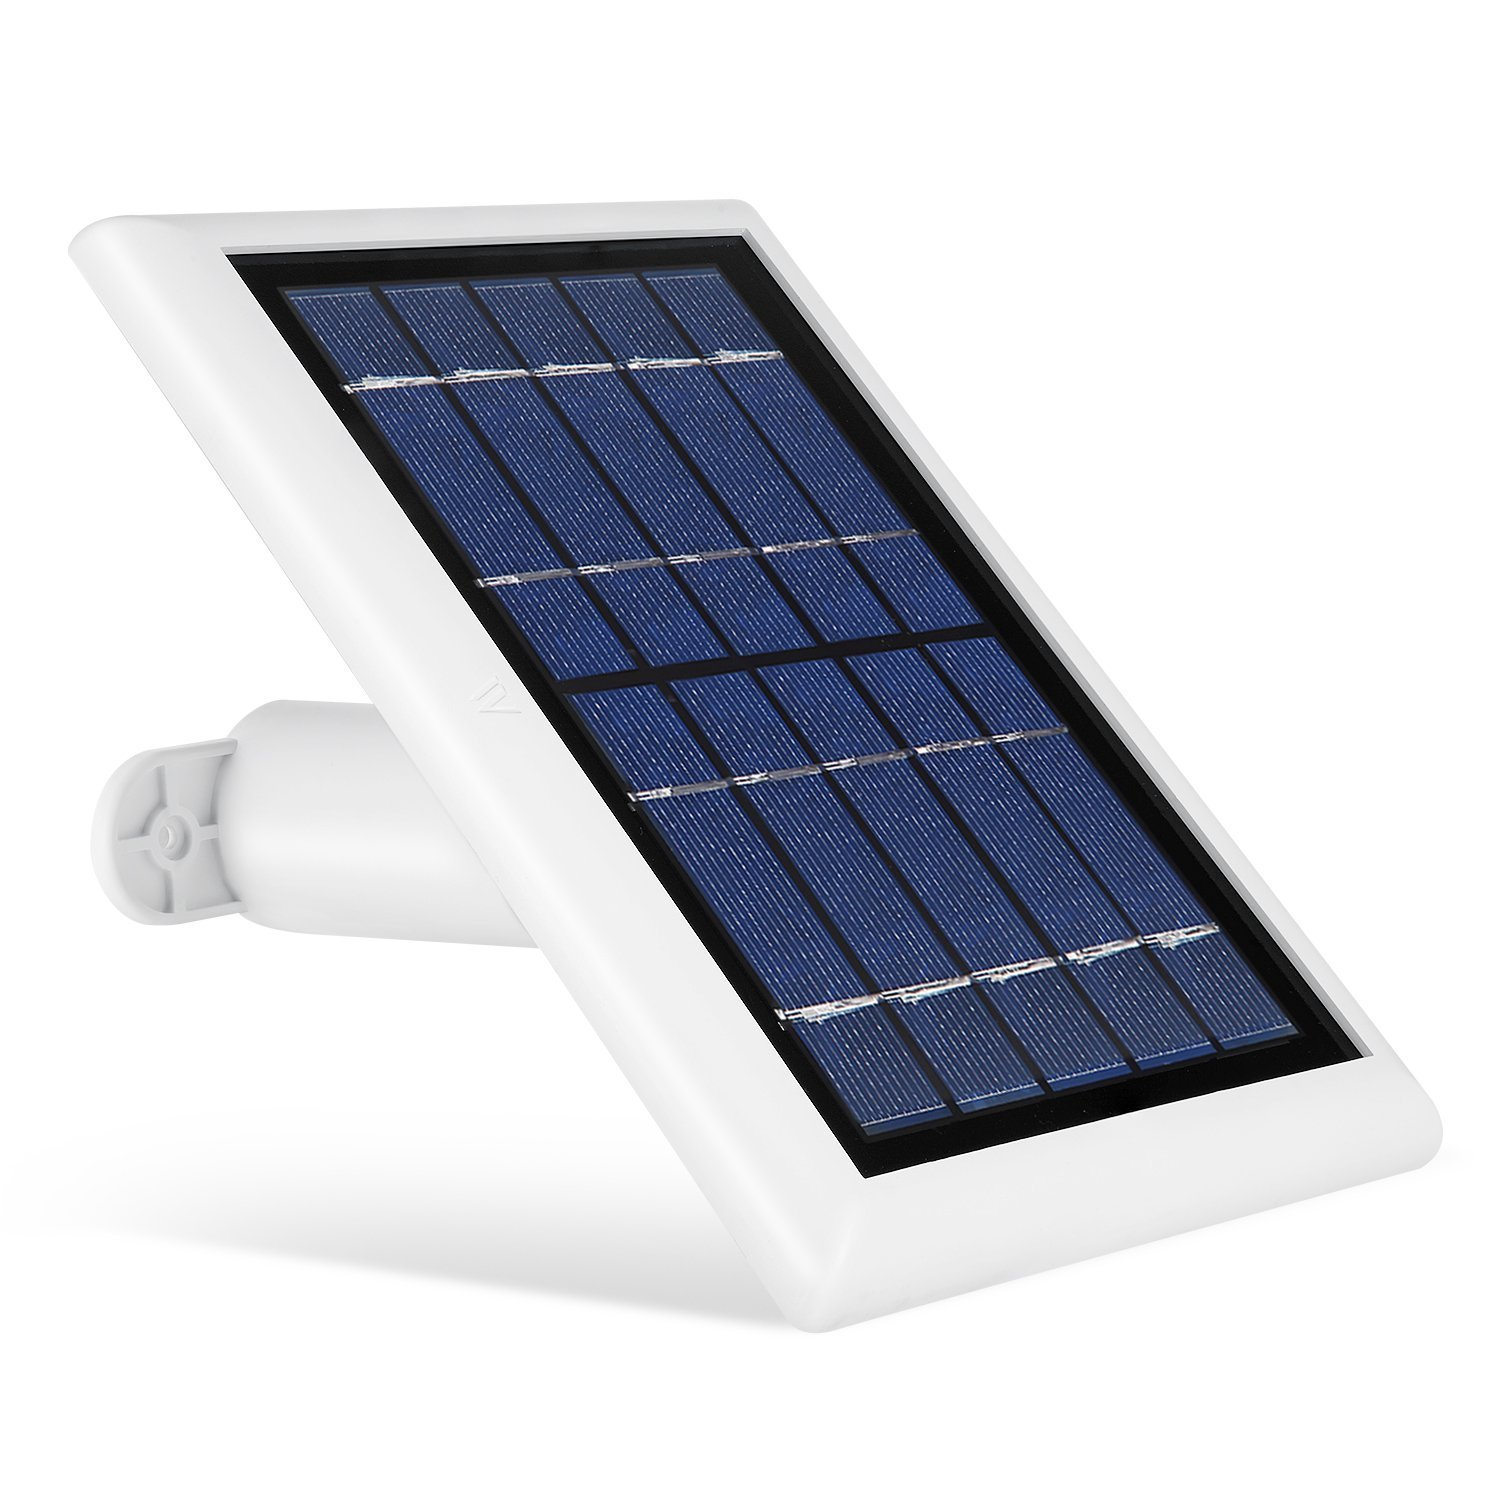 Solar Panel for Ring Spotlight Camera, Power Your Ring Spotlight Cam continuously with Our New Solar Charger - by Wasserstein (White)